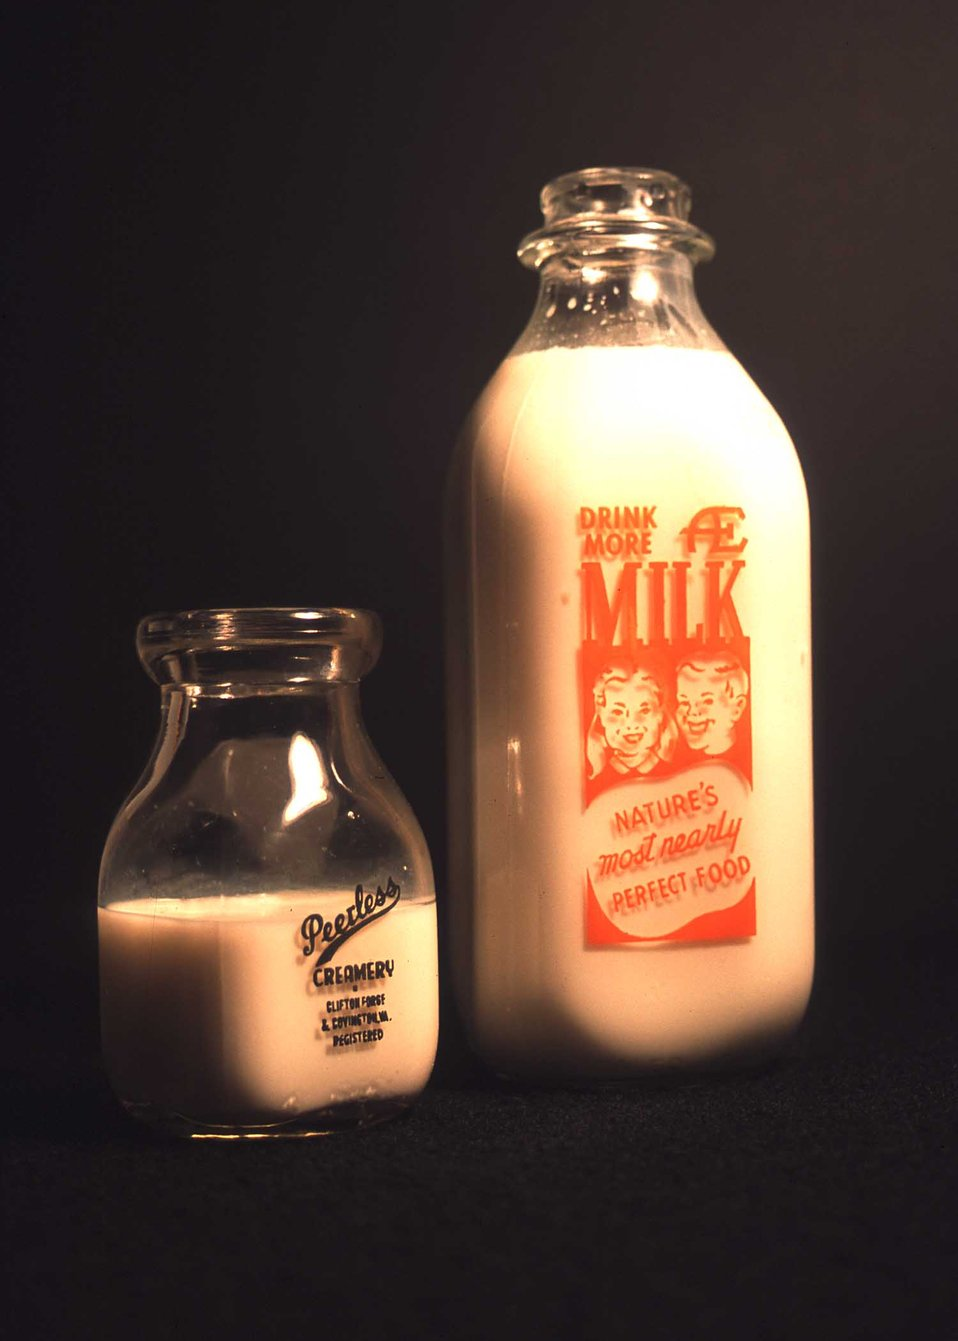 Milk is one of the most popular agricultural products produced in Missouri.